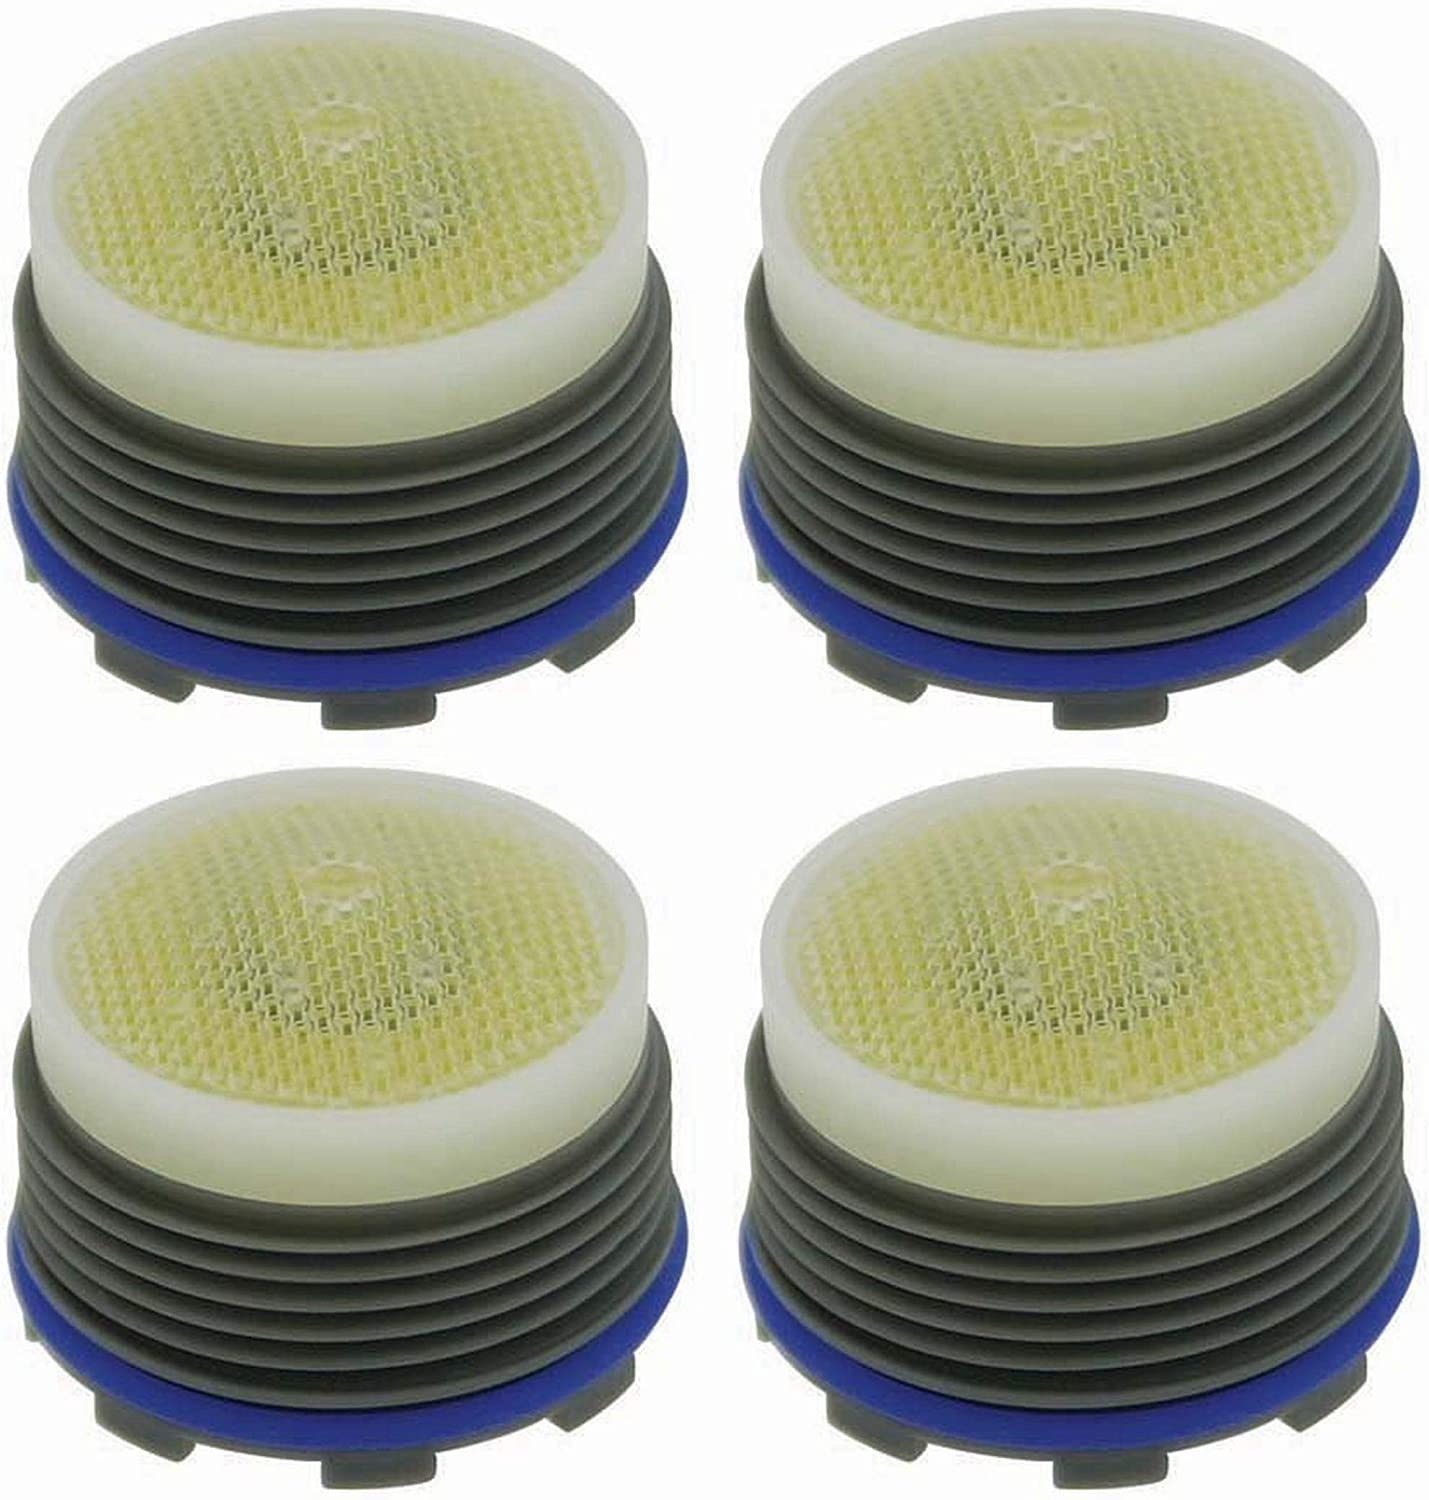 Five Pack M18.5 x 1 Threads Honeycomb Tiny Junior Size Aerated Yellow//Clear Dome 2.2 GPM Plastic 0.561 Height Neoperl 13 0930 5 Standard Flow PCA Cache Perlator HC Aerator